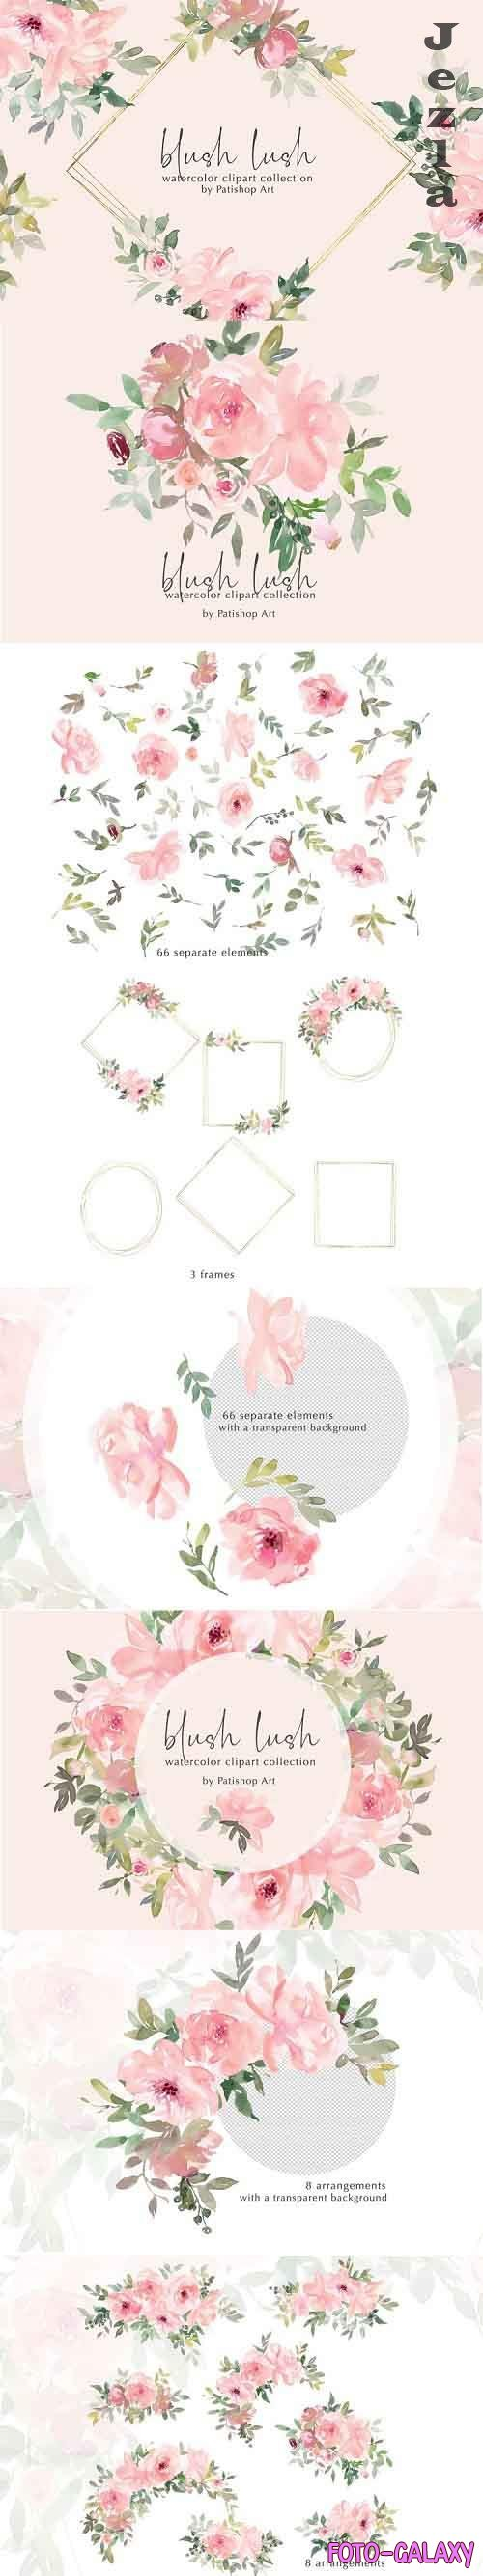 Blush Lush Watercolor Floral Clip Art Collection - 656617